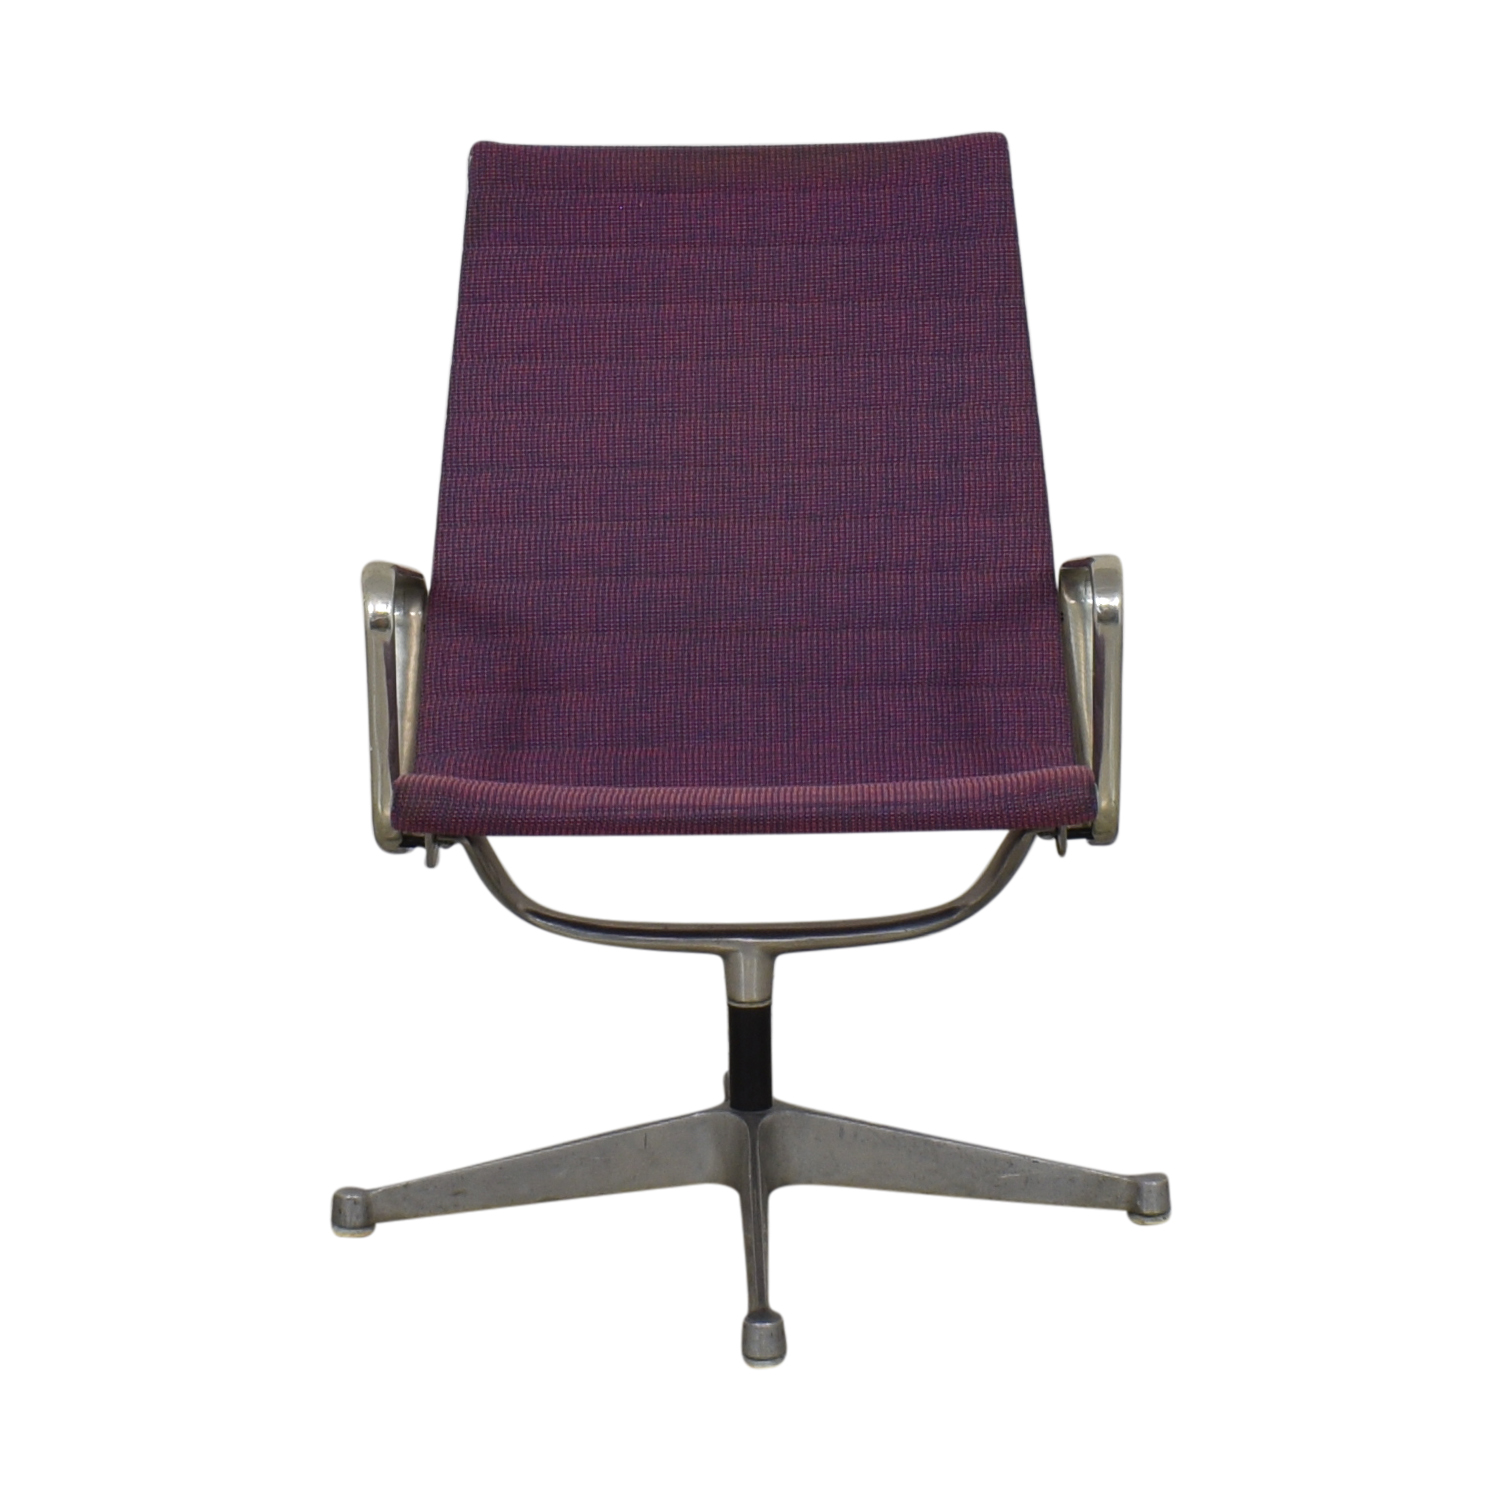 Herman Miller Herman Miller Eames Office Chair second hand